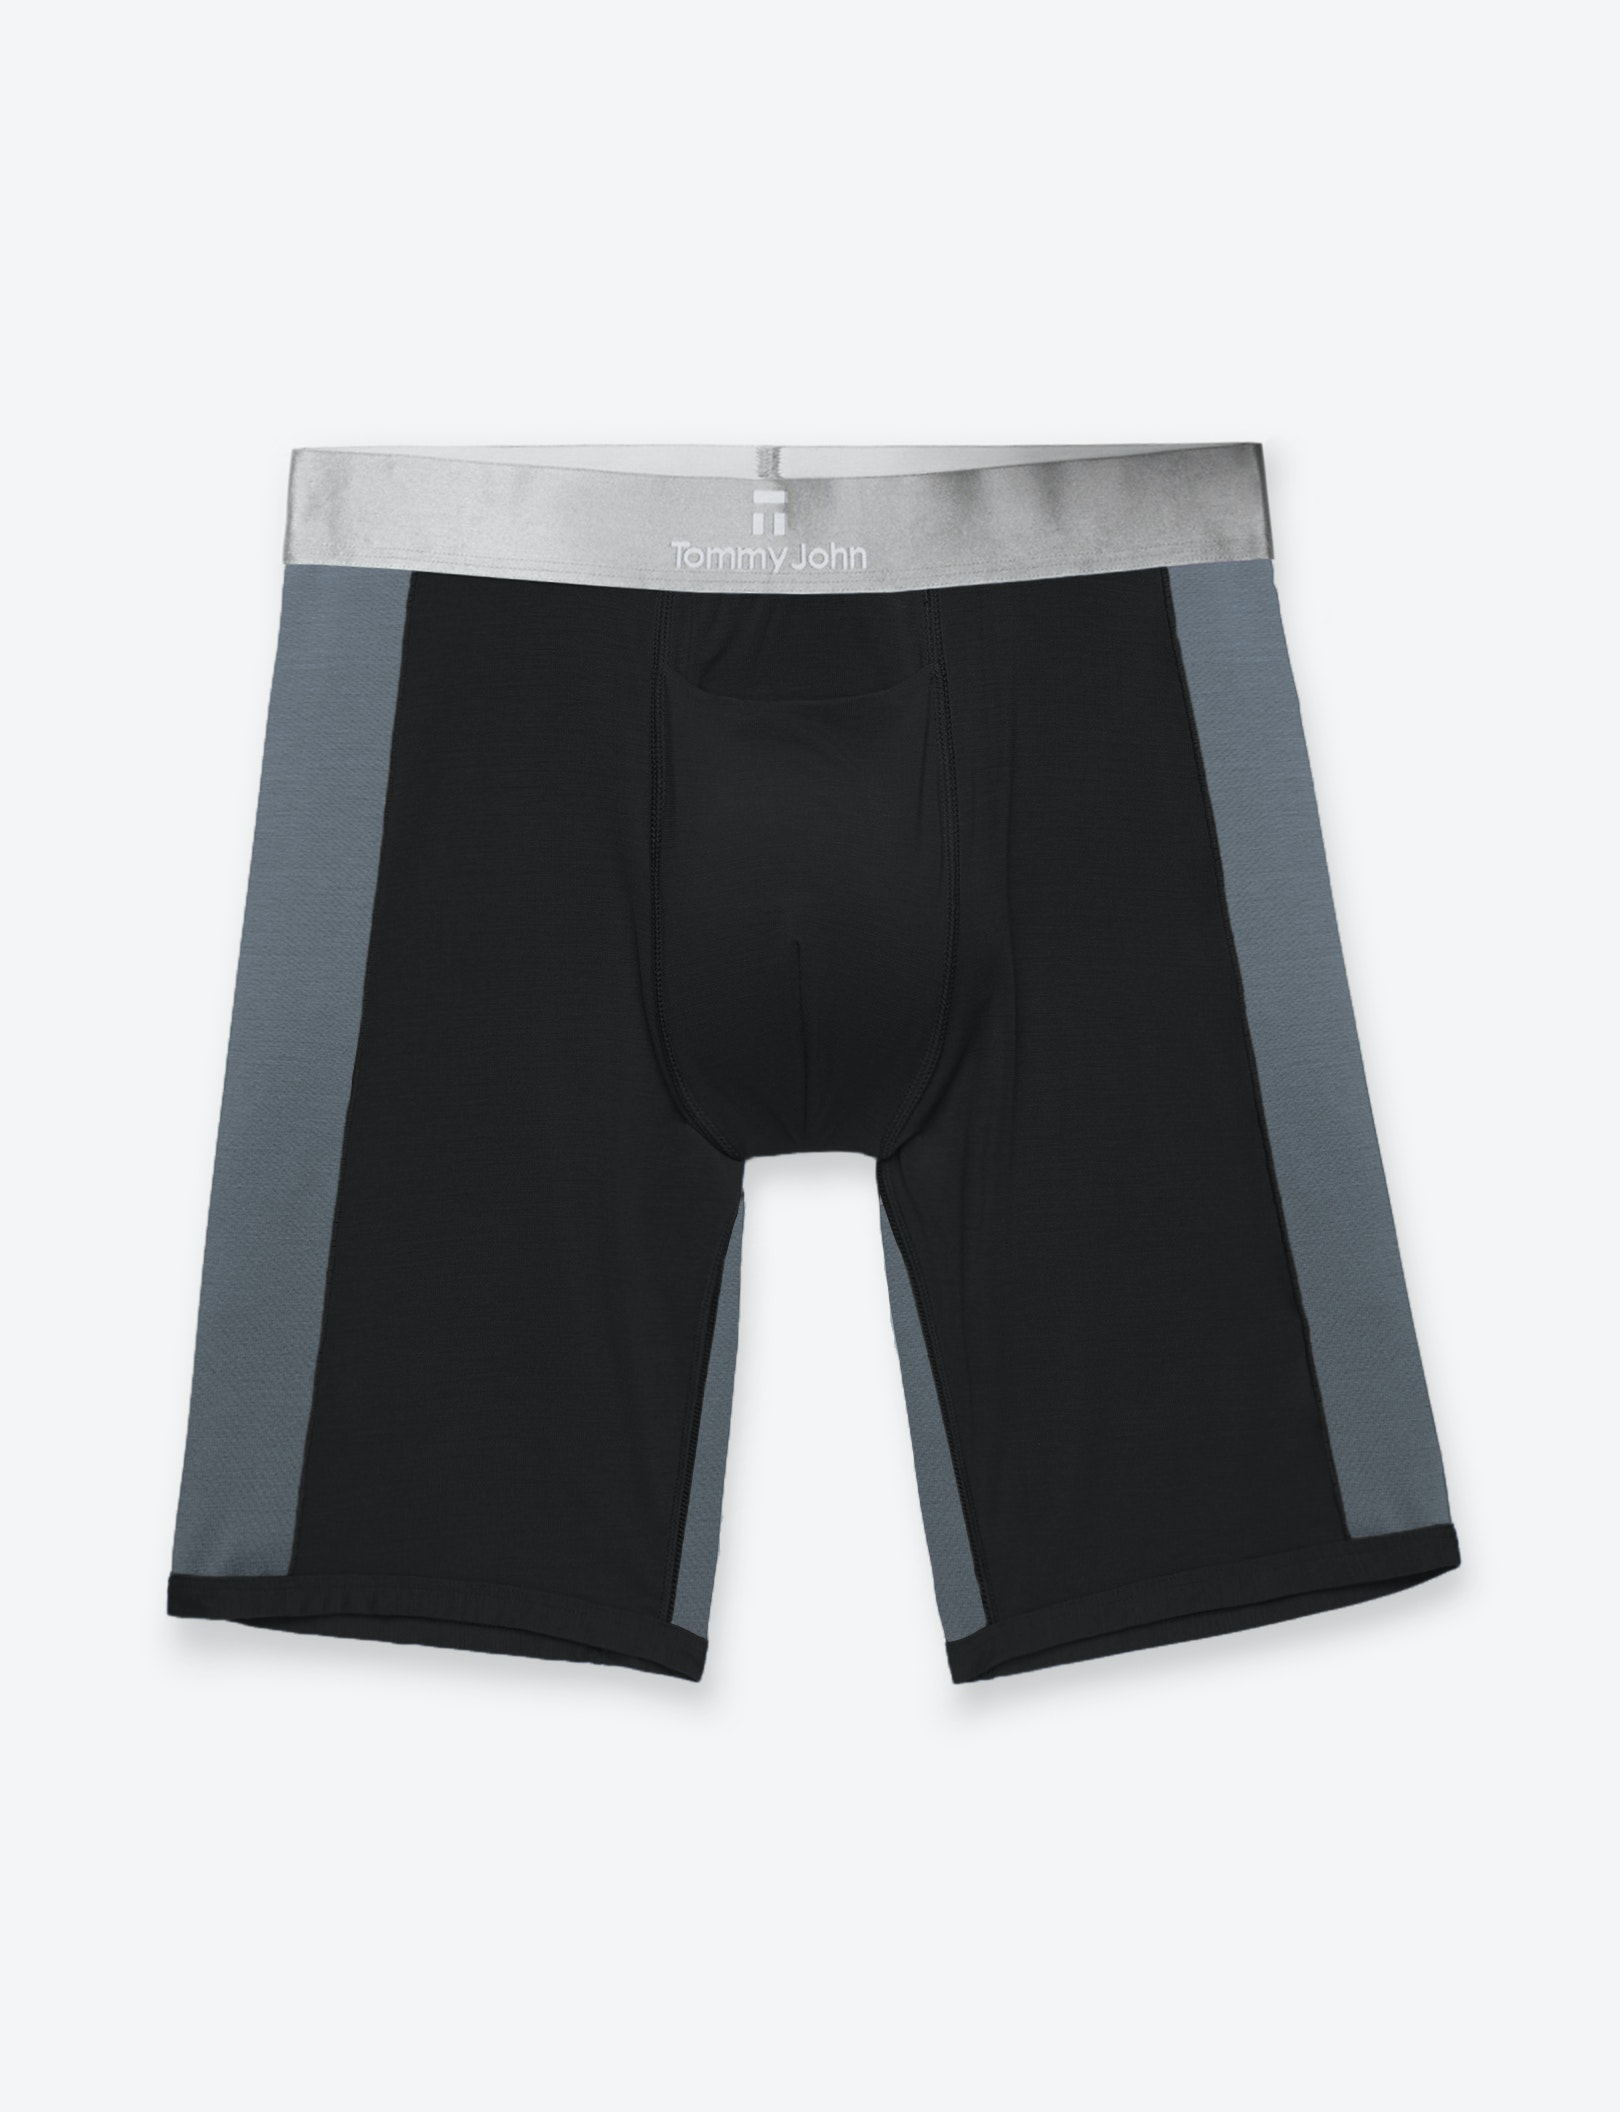 shop mens underwear online tommy john